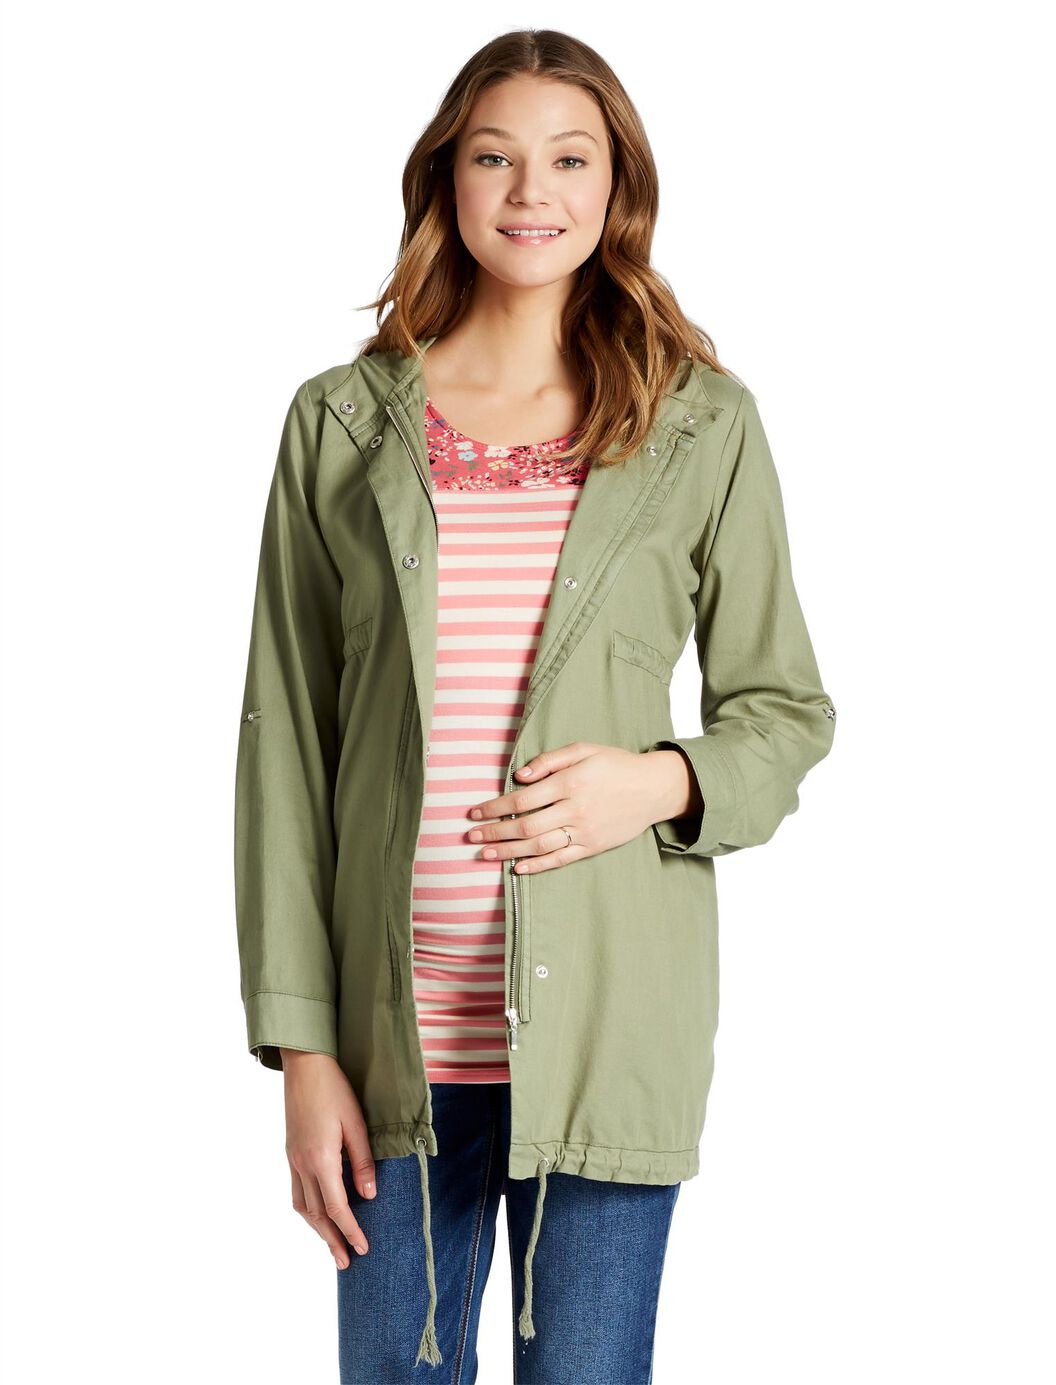 Jessica Simpson Super Soft Twill Maternity Jacket at Motherhood Maternity in Victor, NY | Tuggl